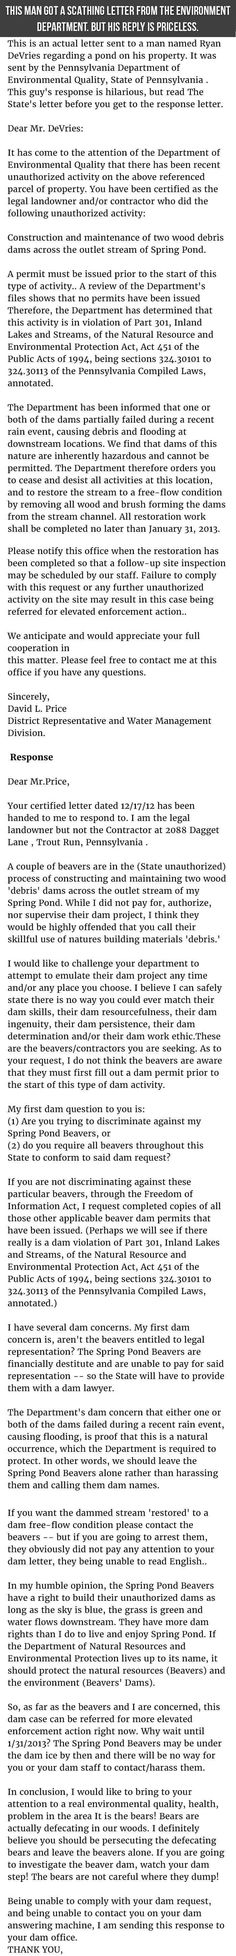 Man Receives Scathing Letter From Environmental Department His Reply Is Priceless funny jokes story lol funny quote funny quotes funny sayings joke hilarious humor stories funny jokes